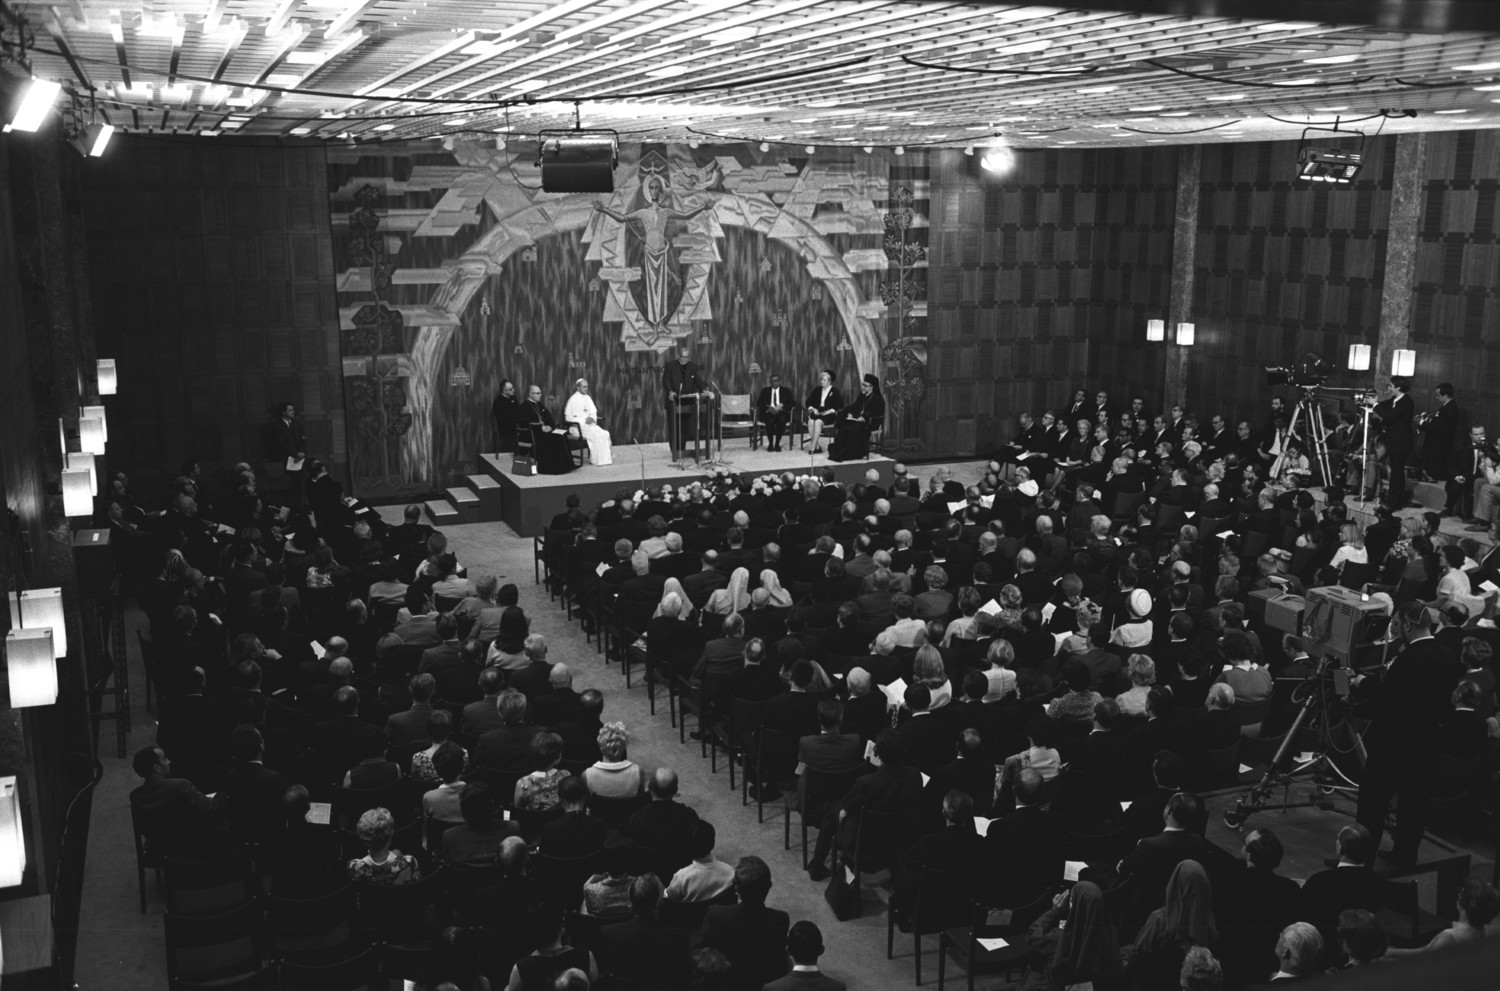 Blessed Pope Paul VI is seated as Eugene C. Blake, general secretary of the World Council of Churches, gives a speech during the Pope's visit to the WCC in Geneva, June 10, 1969. Seated to the left on the stage are: Father Pasquale Macchi, personal secretary to the Pope, and Cardinal Johannes Willebrands, president of the Pontifical Council for Promoting Christian Unity. Pope Francis is scheduled to attend an ecumenical prayer service and meeting at the WCC during a one-day visit to Geneva June 21.